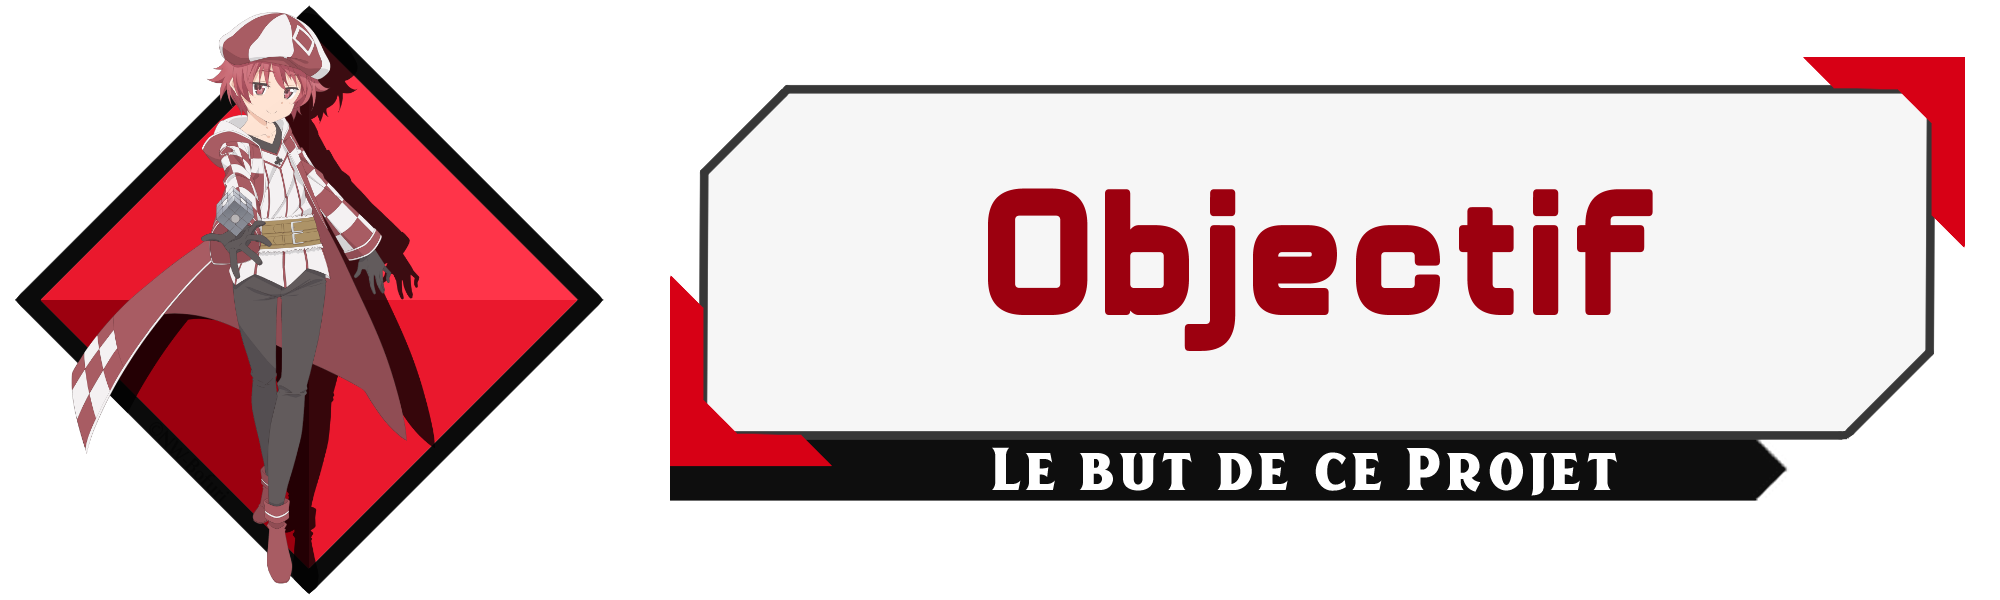 Objectif.png